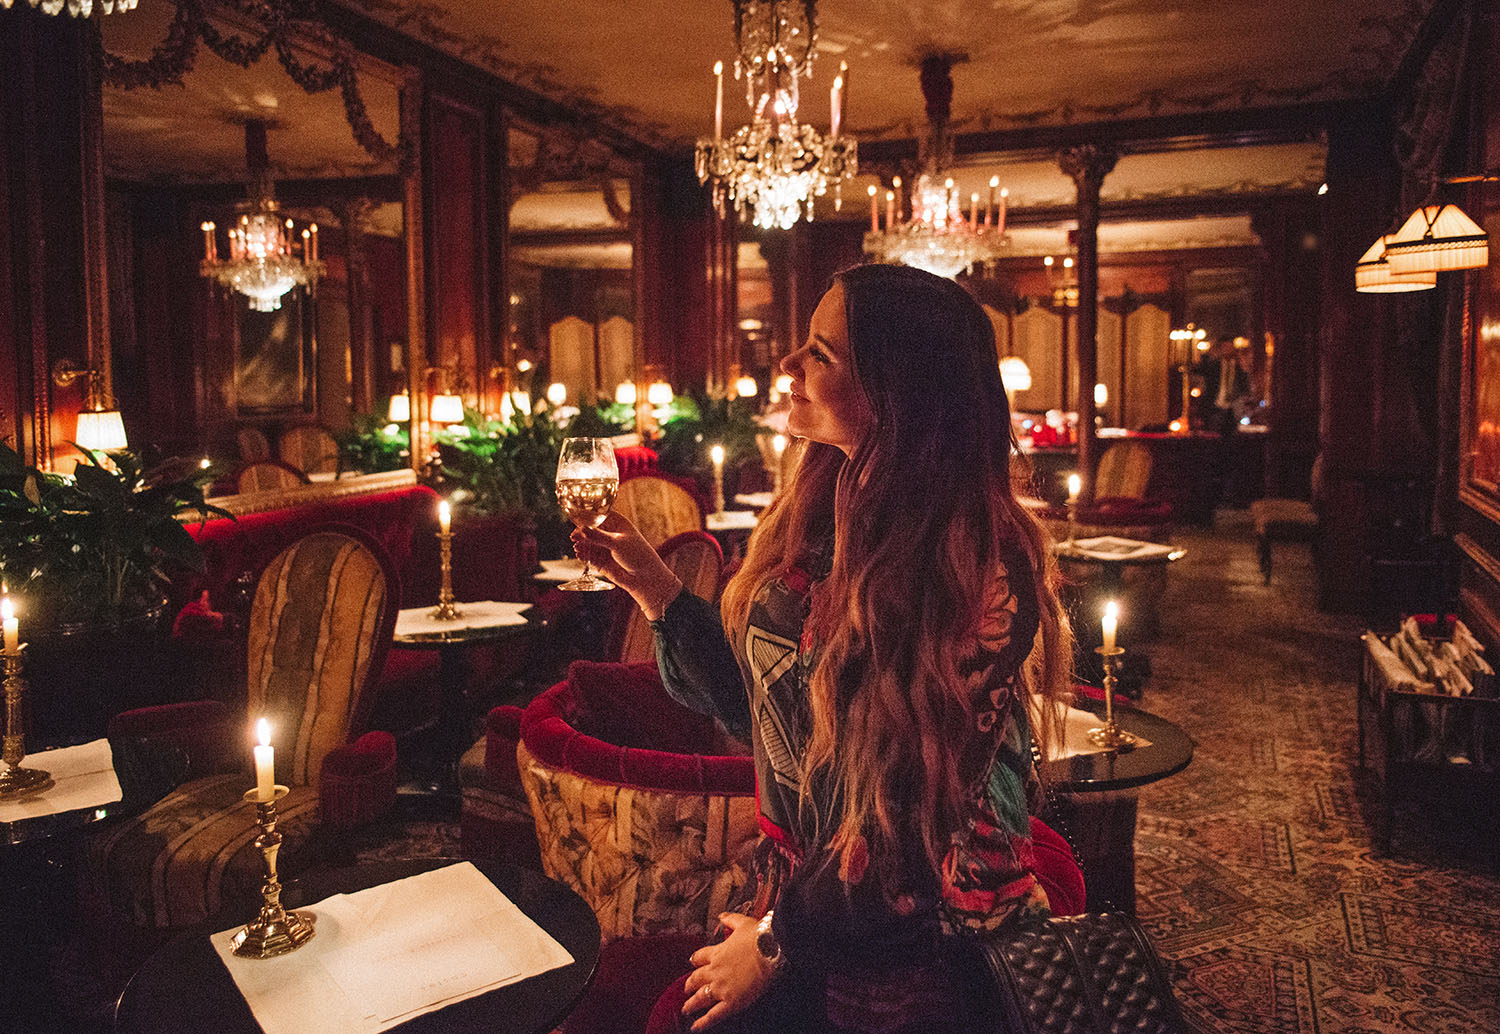 Woman with long hair in beautiful room with a glass of wine at Hotel Costes in Paris